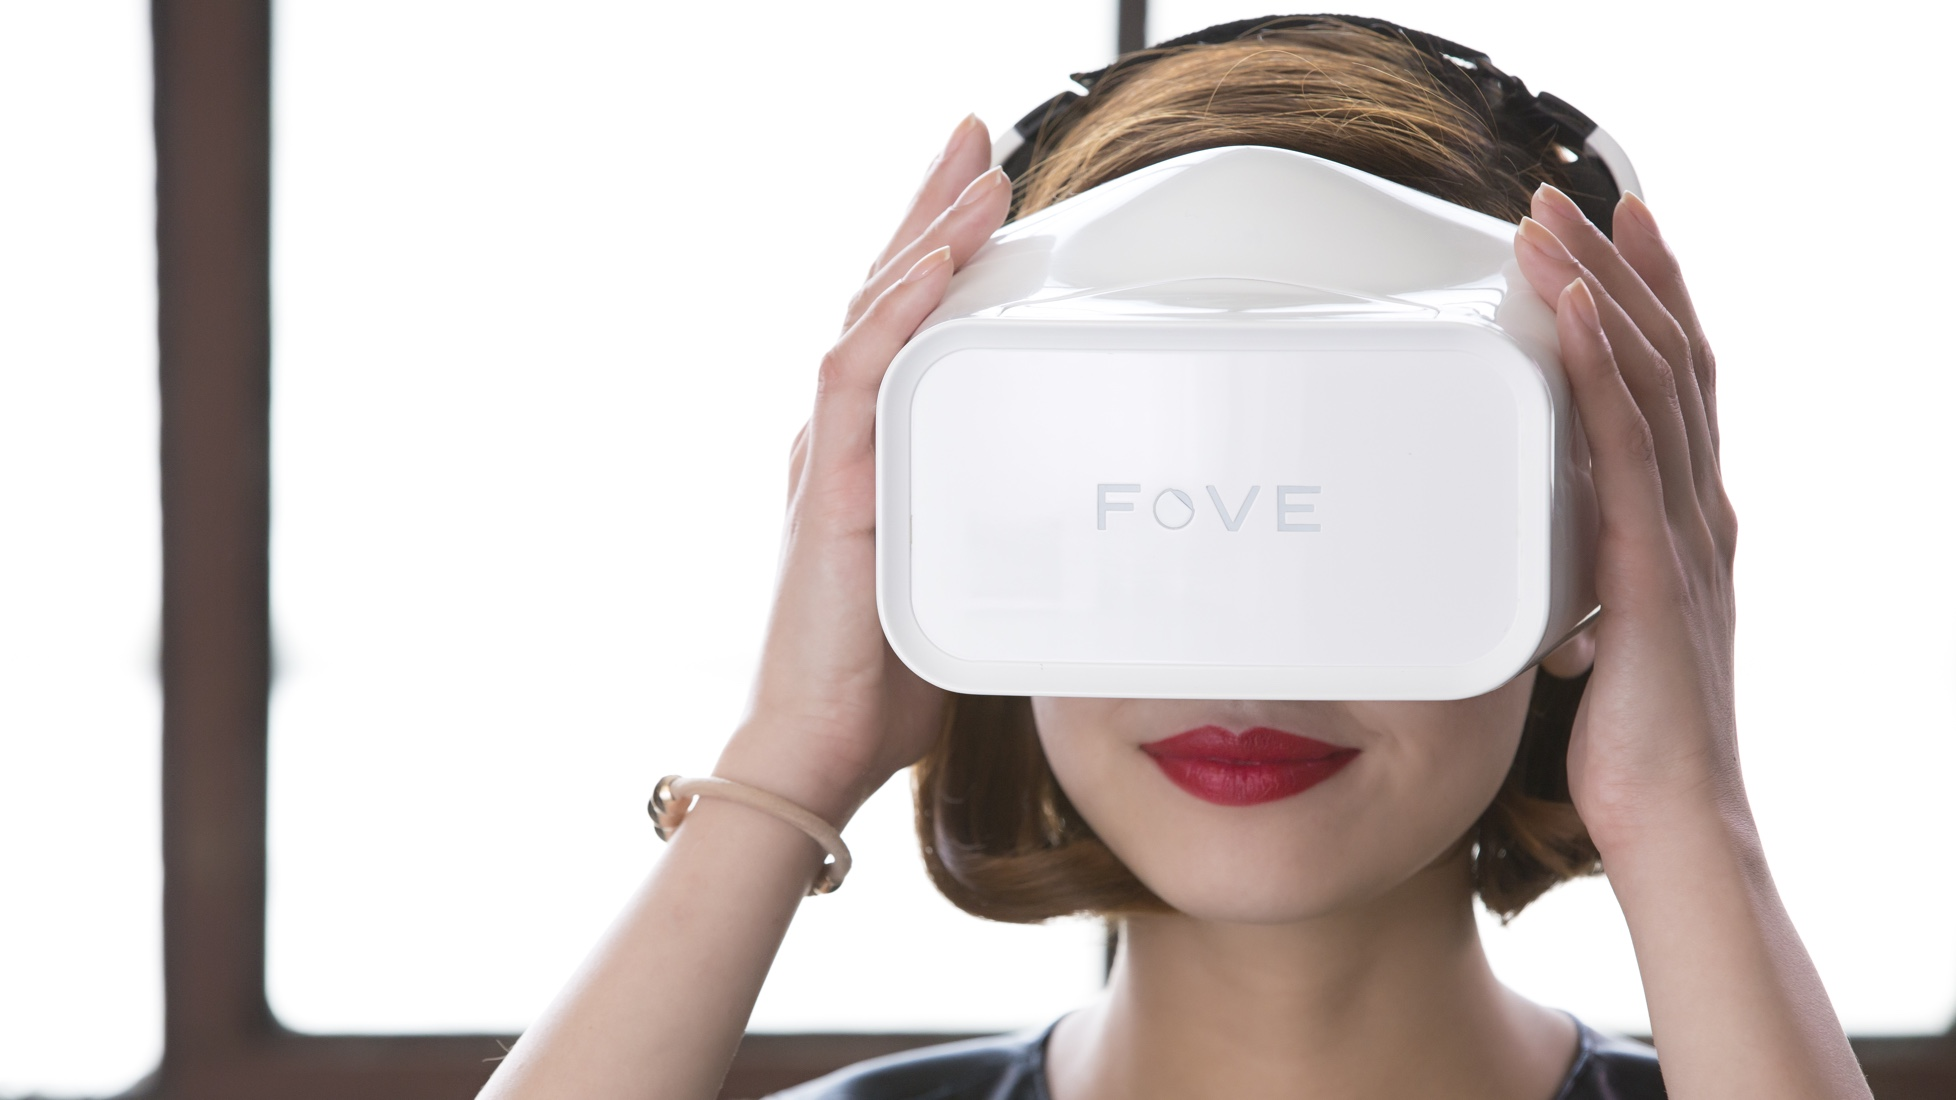 FOVE could support Valve tracking tech